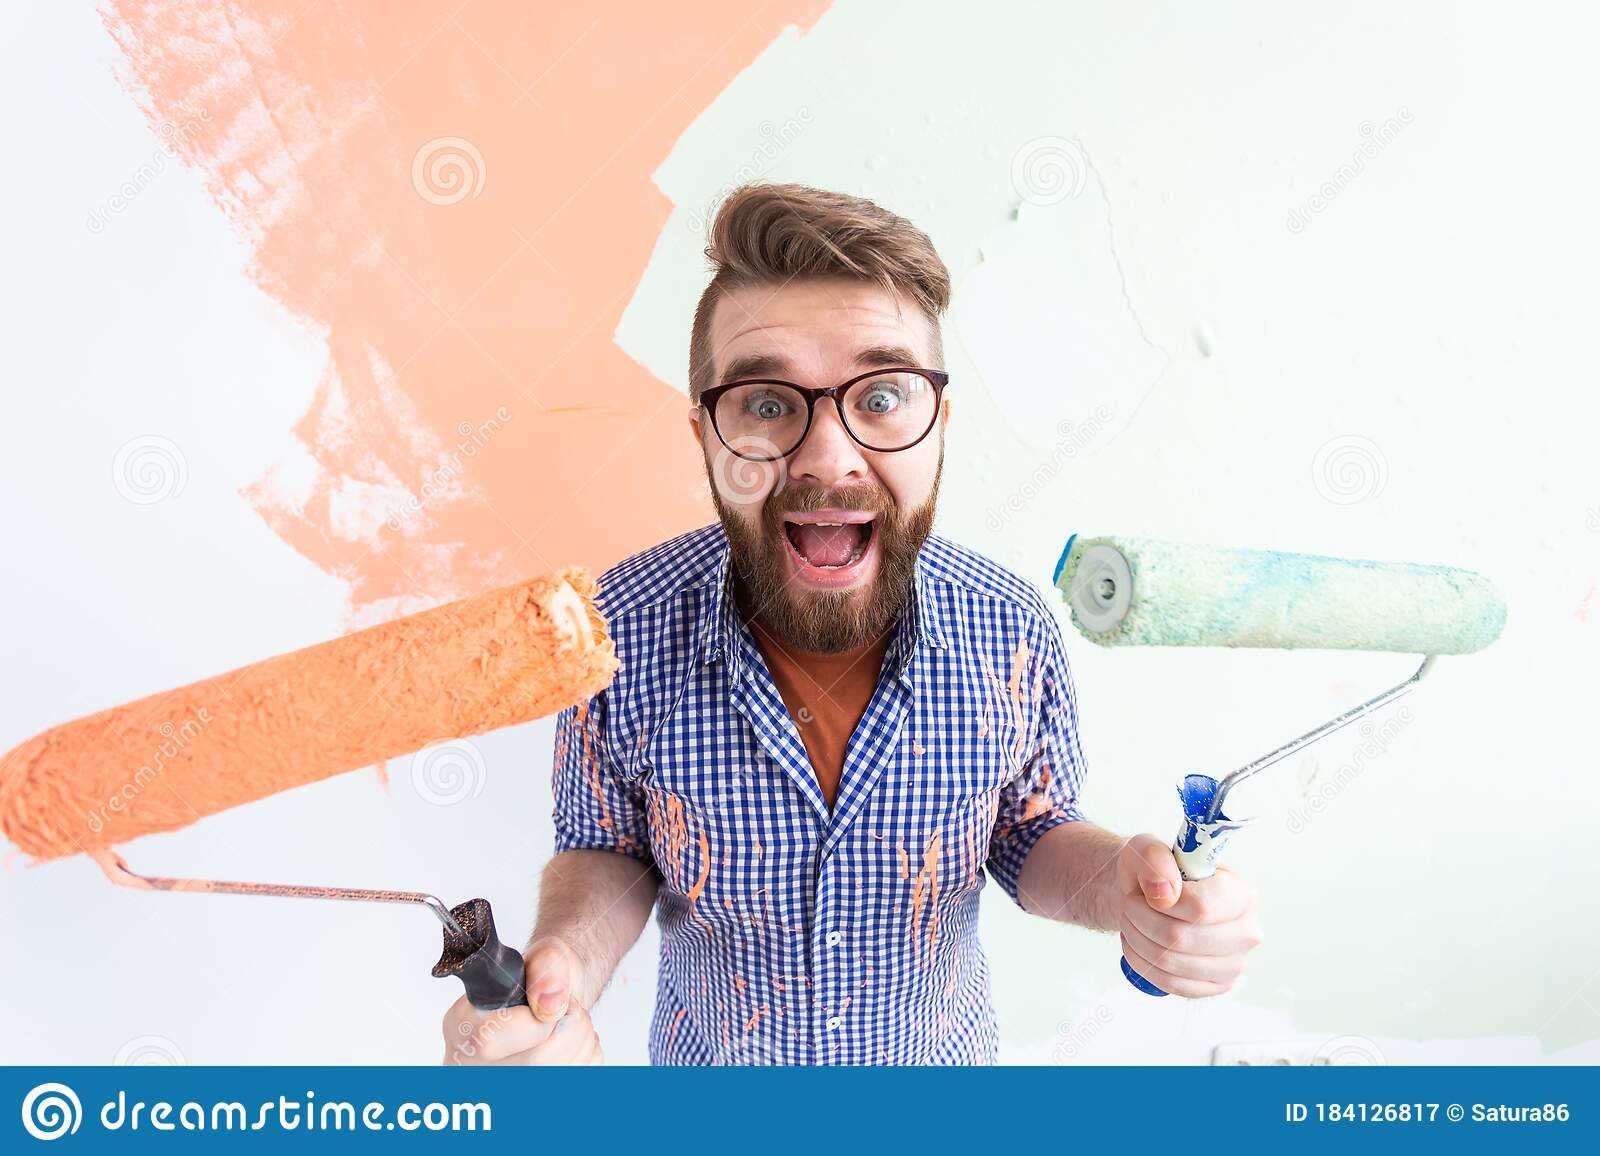 Funny Man Painting Interior Wall Of Home With Paint Roller Redecoration Renovation Apartment Repair And Refreshment Stock Image Image Of Humor Fool 184126817